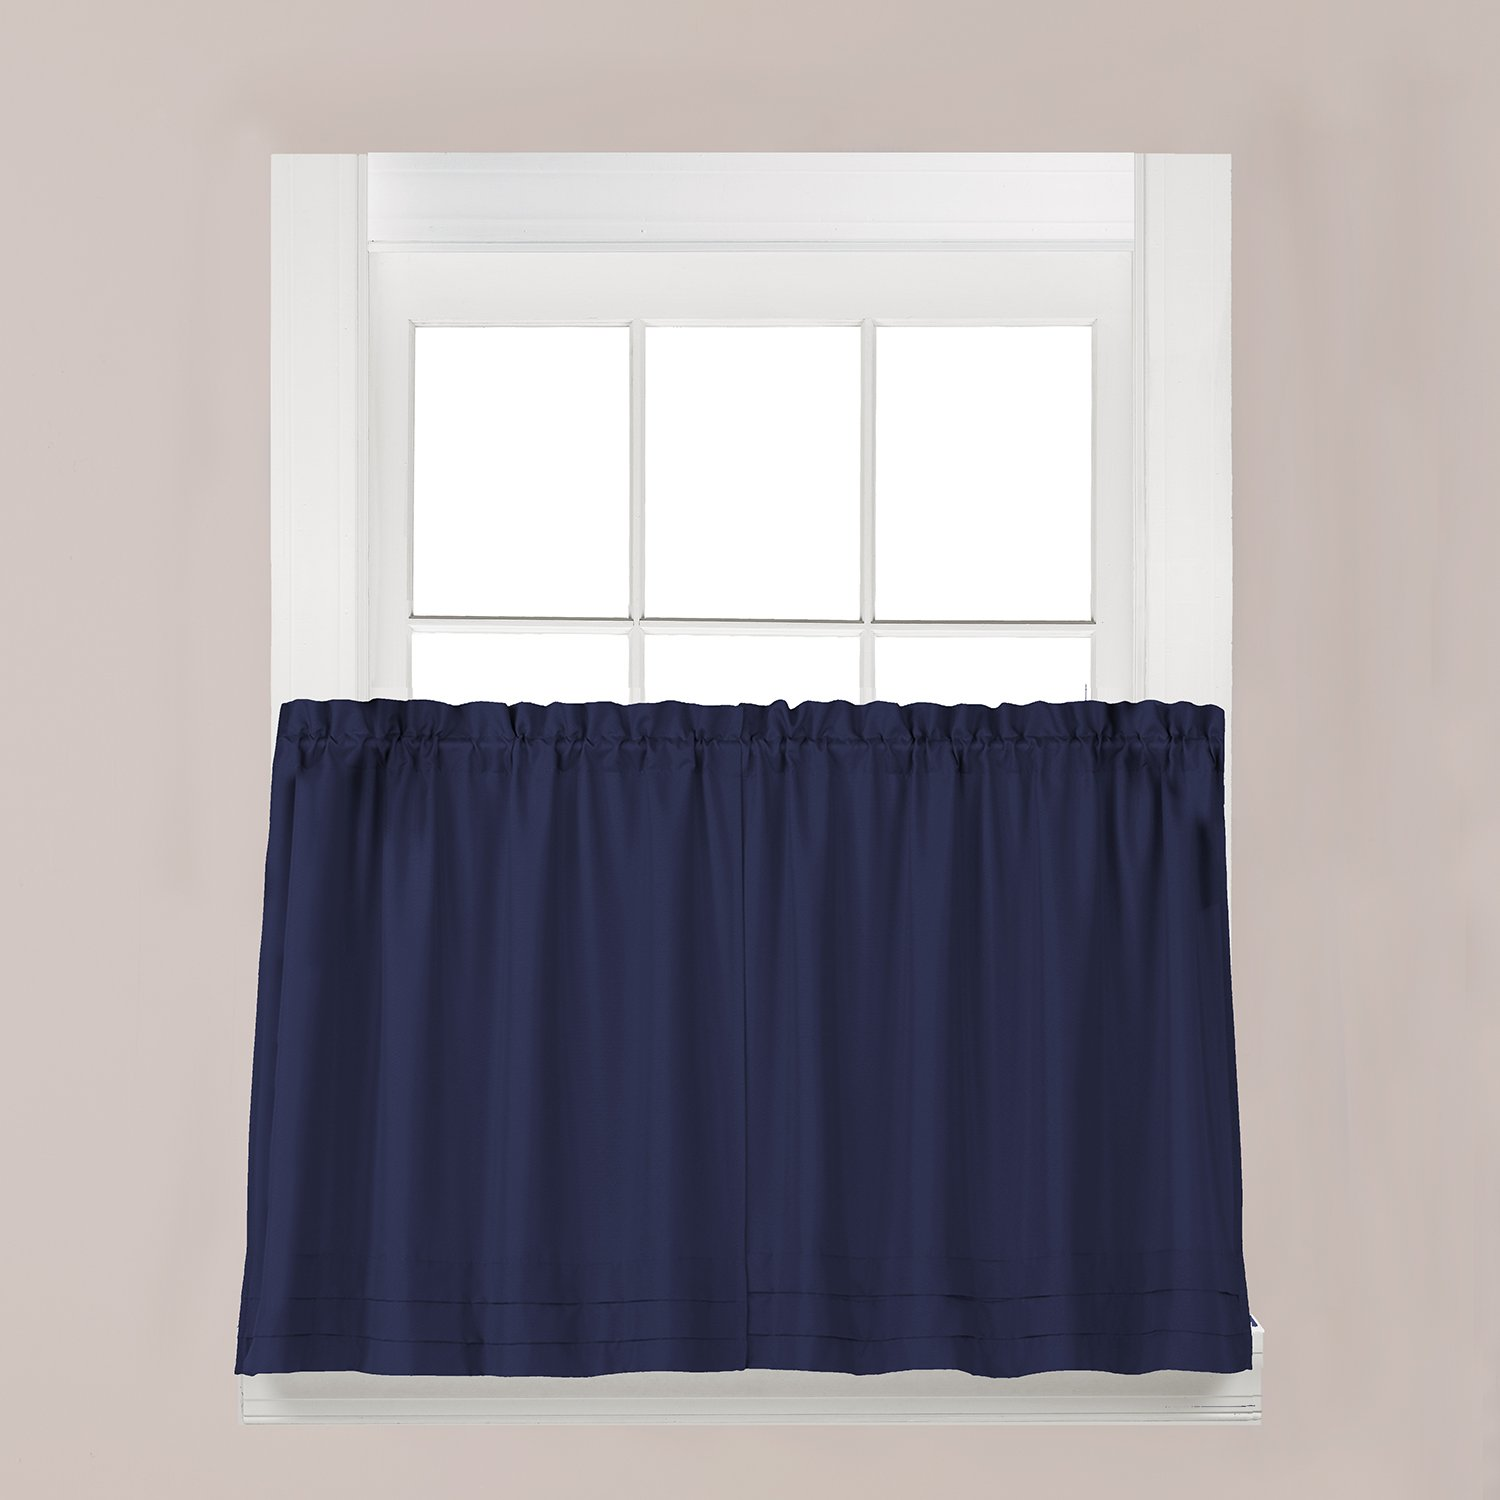 Holden Window Treatment Swag 57-Inch by 30-Inch, Navy, Set of 2 Saturday Knight Ltd P7005900030S09